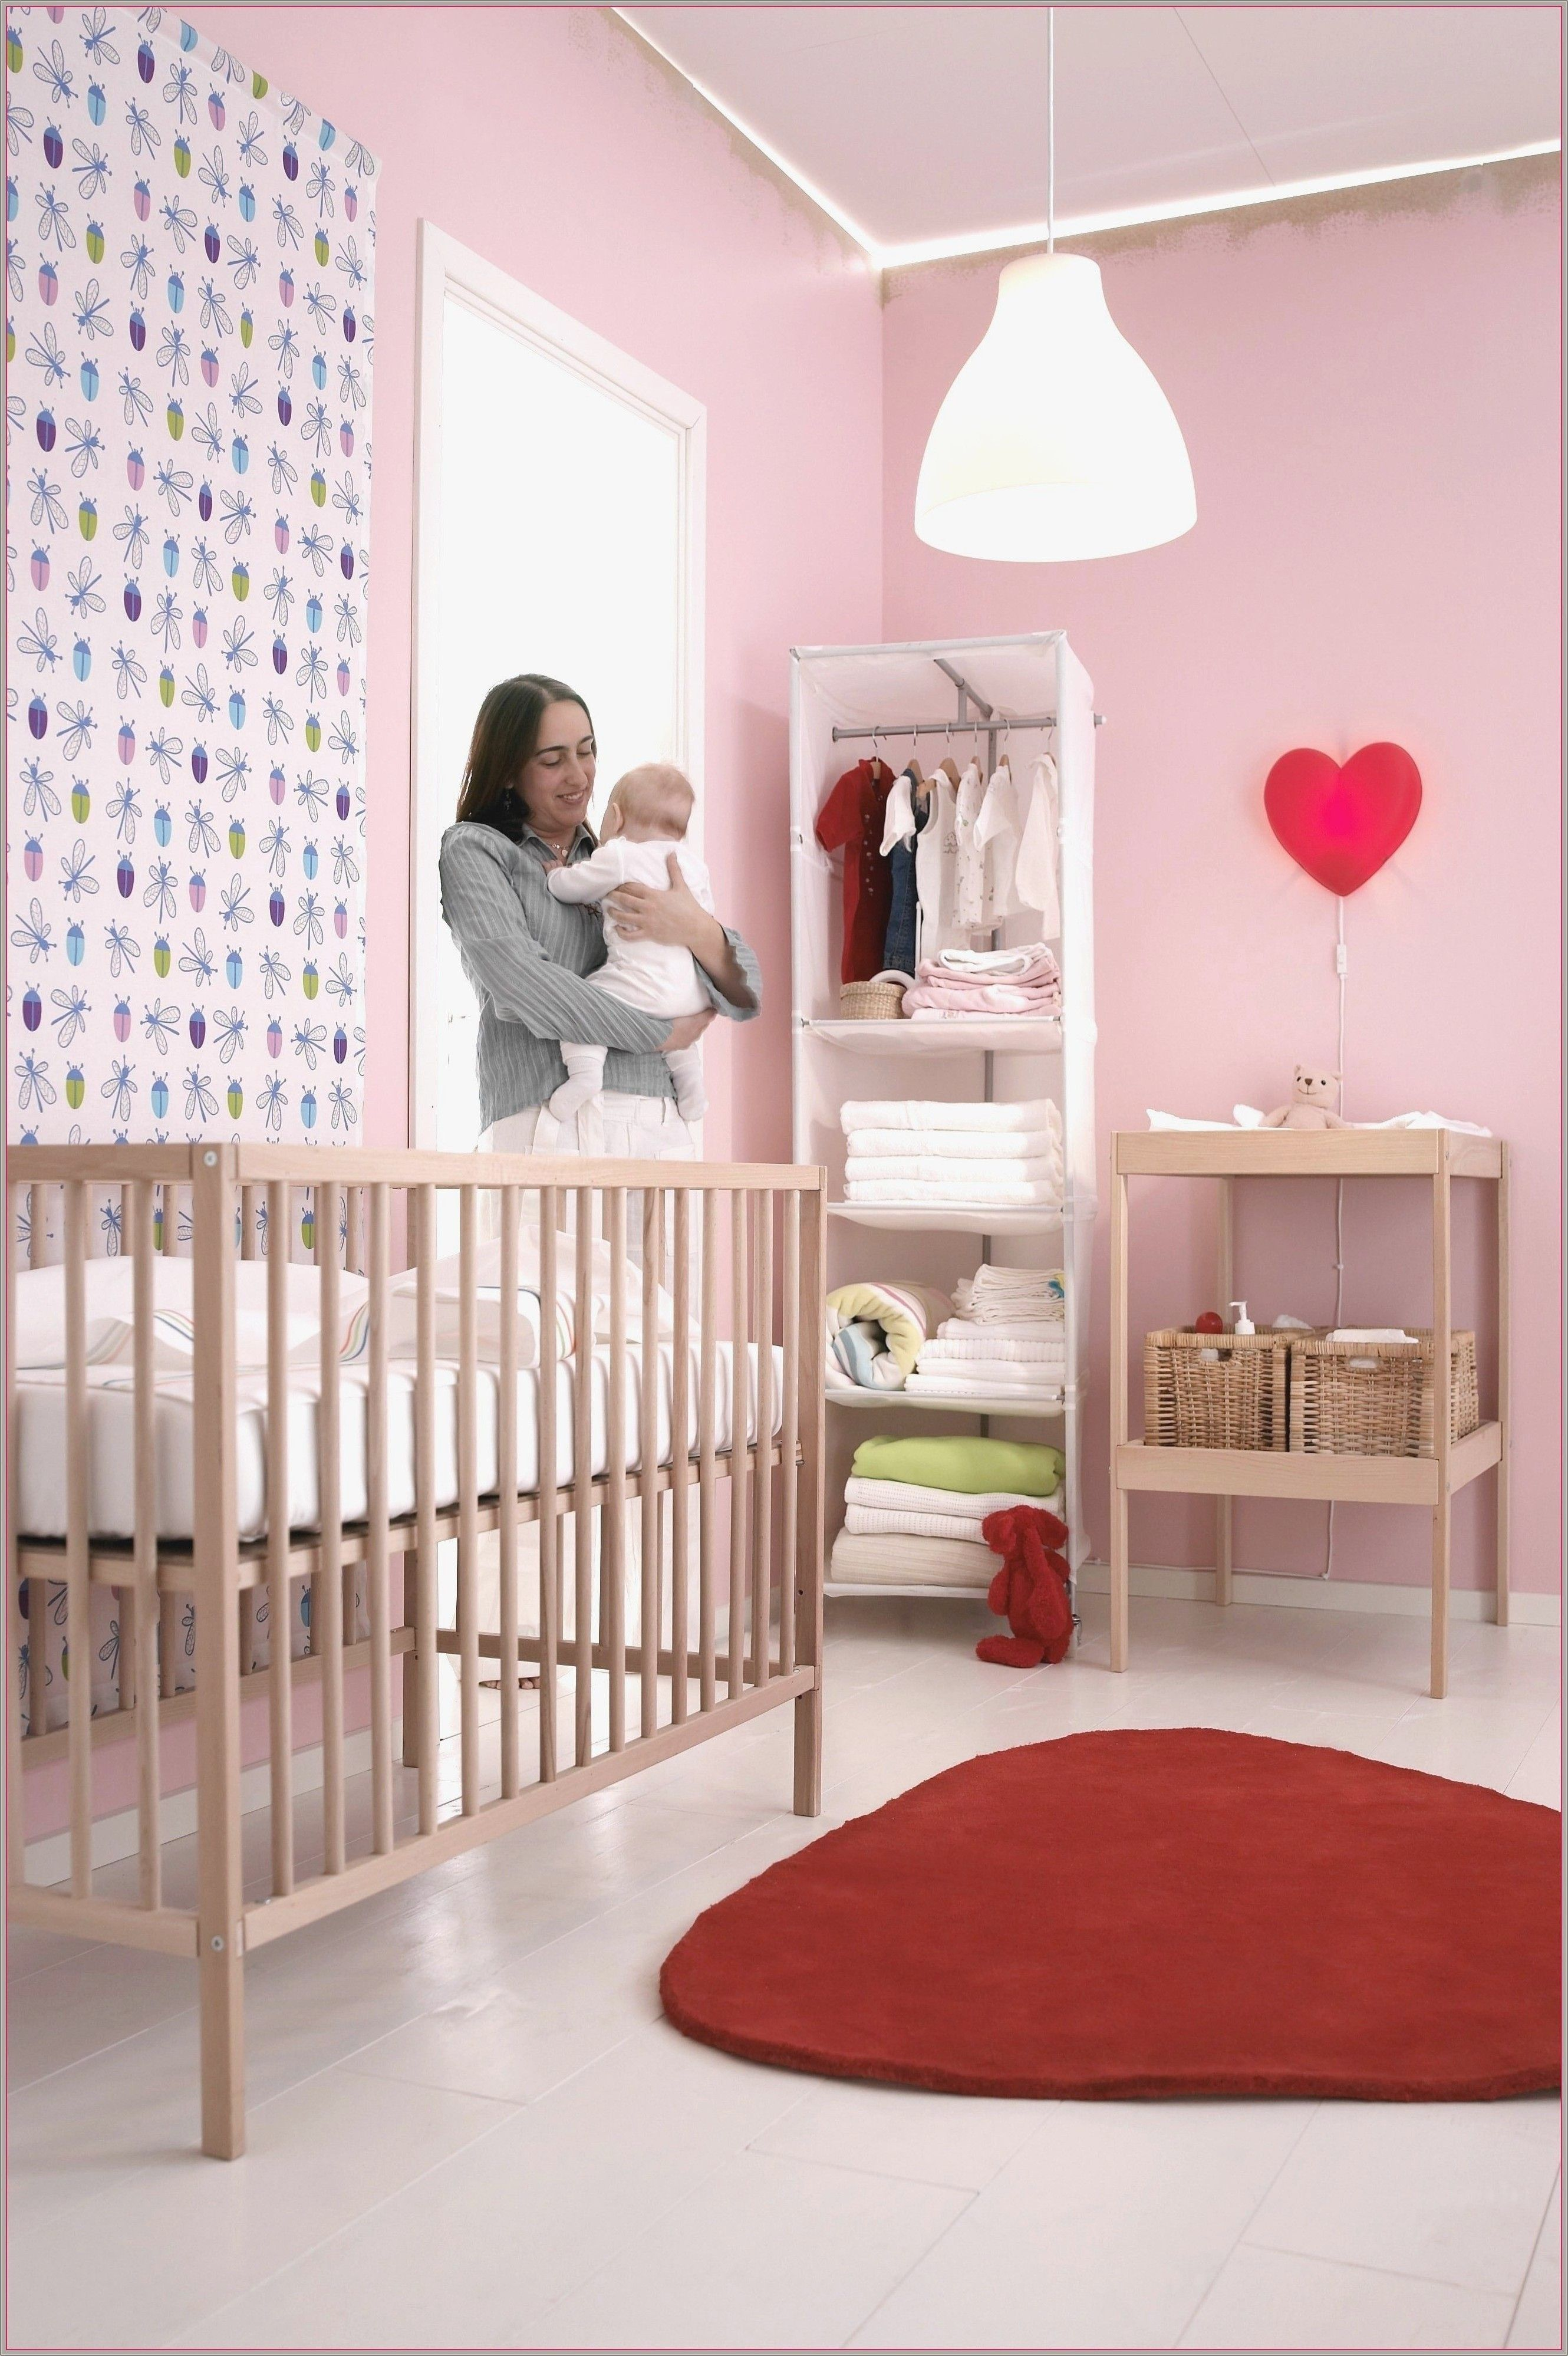 Idee Deco Fait Main Chambre Bebe  Bed, Home, Toddler bed